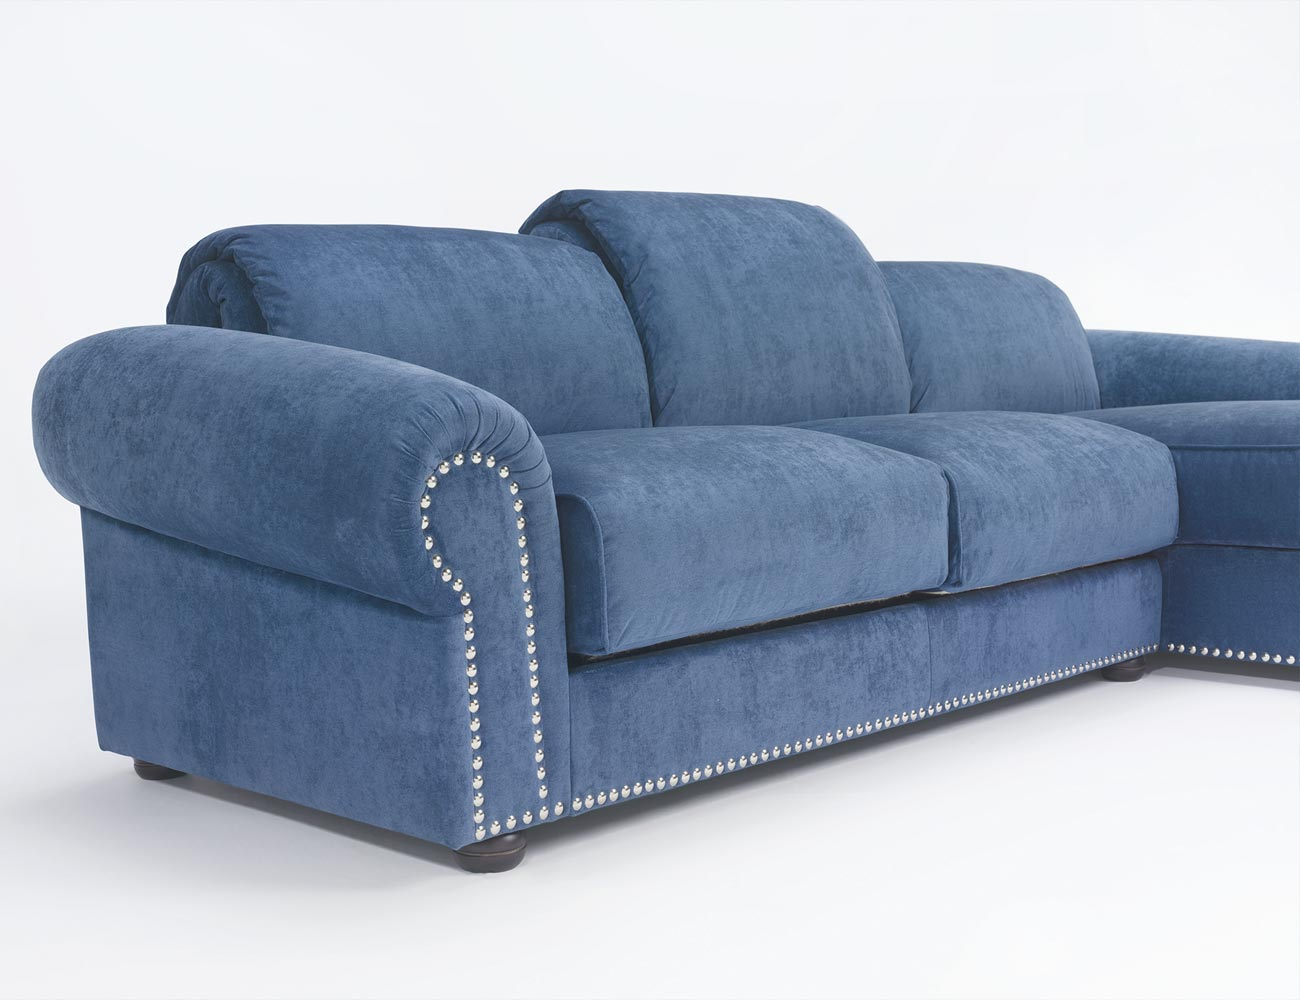 Sofa chaiselongue gran lujo decorativo azul 133